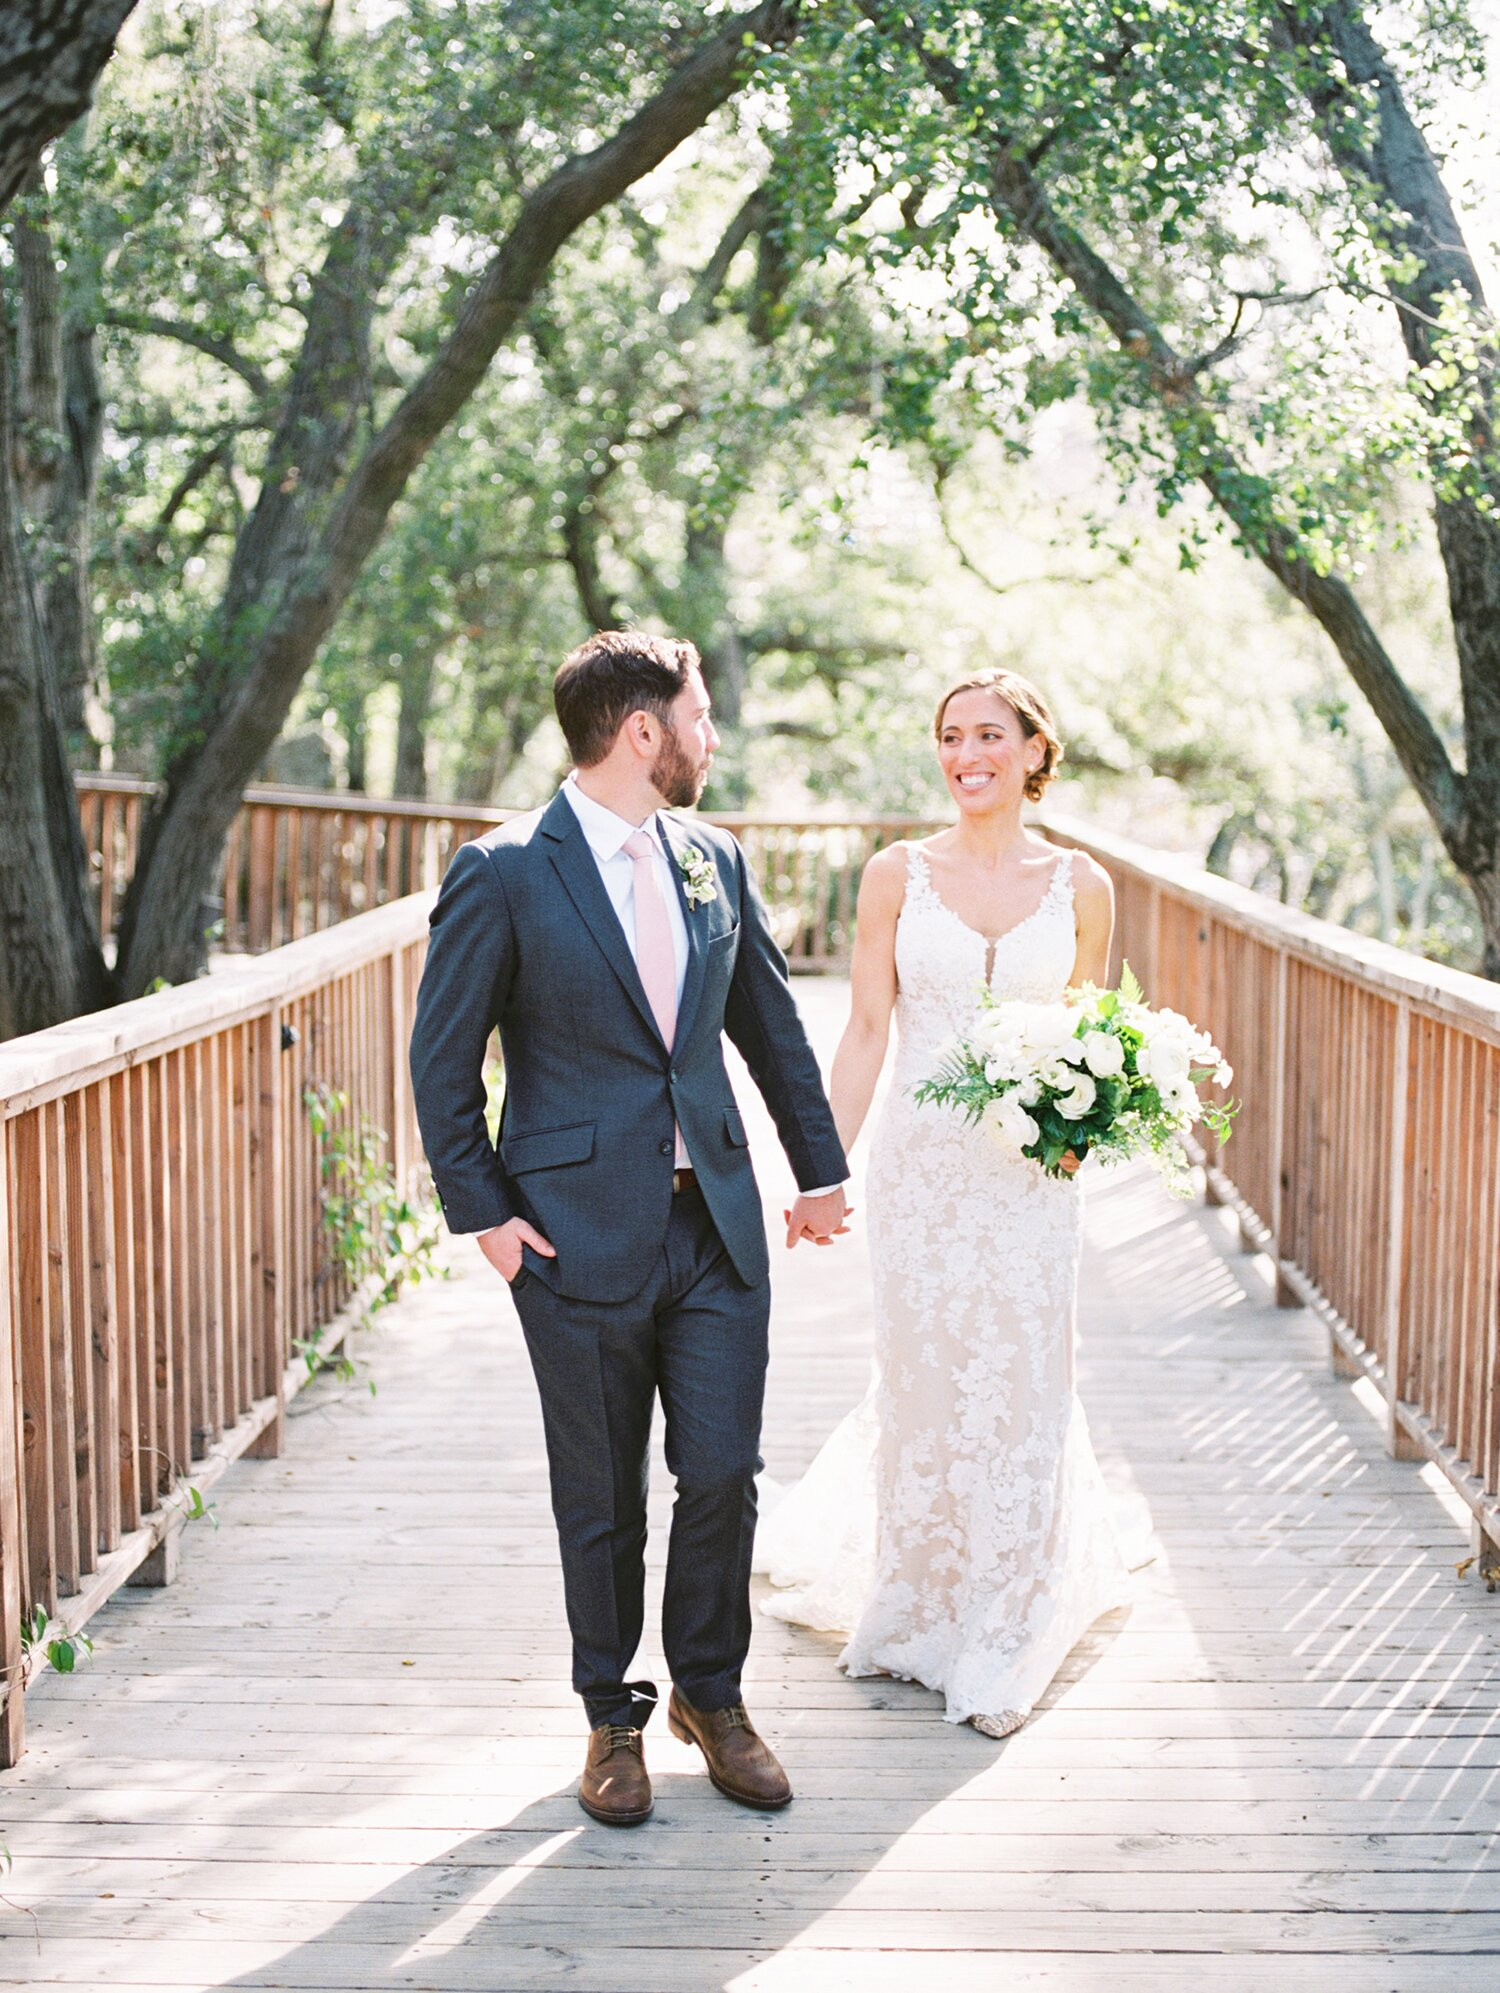 This Couple Exchanged Vows In Malibu Surrounded By Oak Trees And